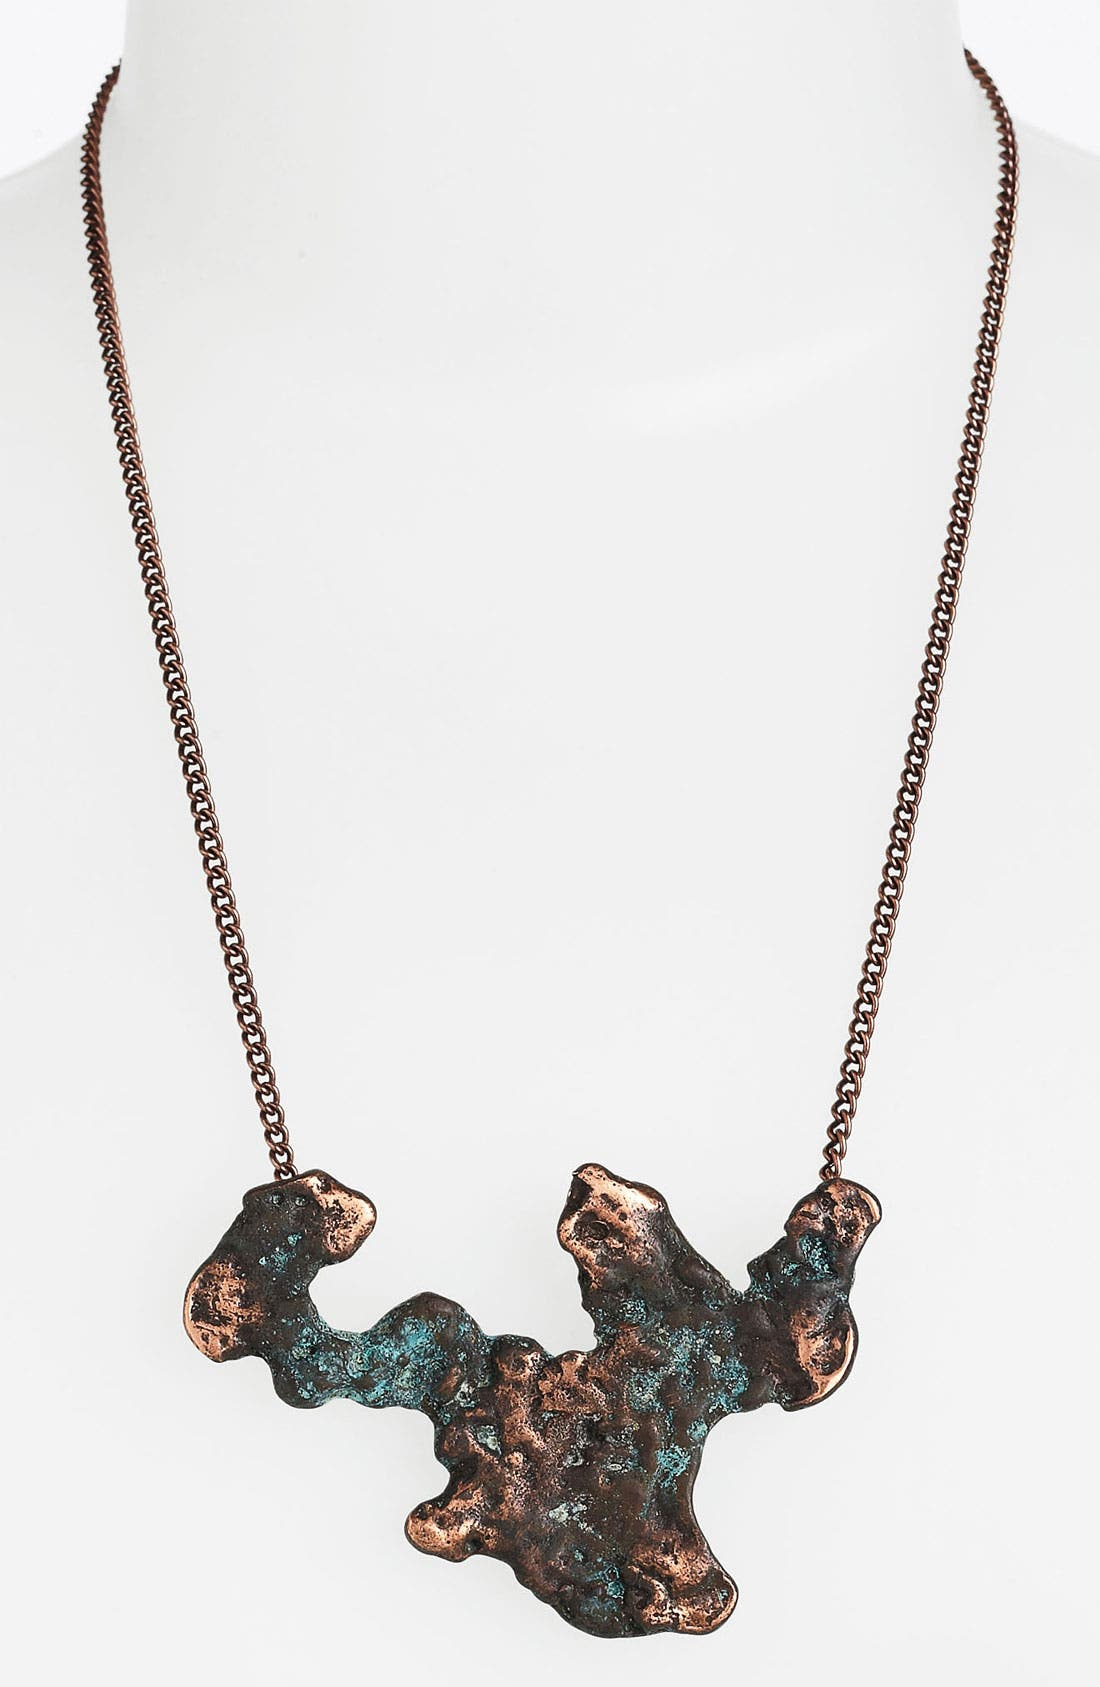 Alternate Image 1 Selected - Low Luv 'Salt Lake' Pendant Necklace